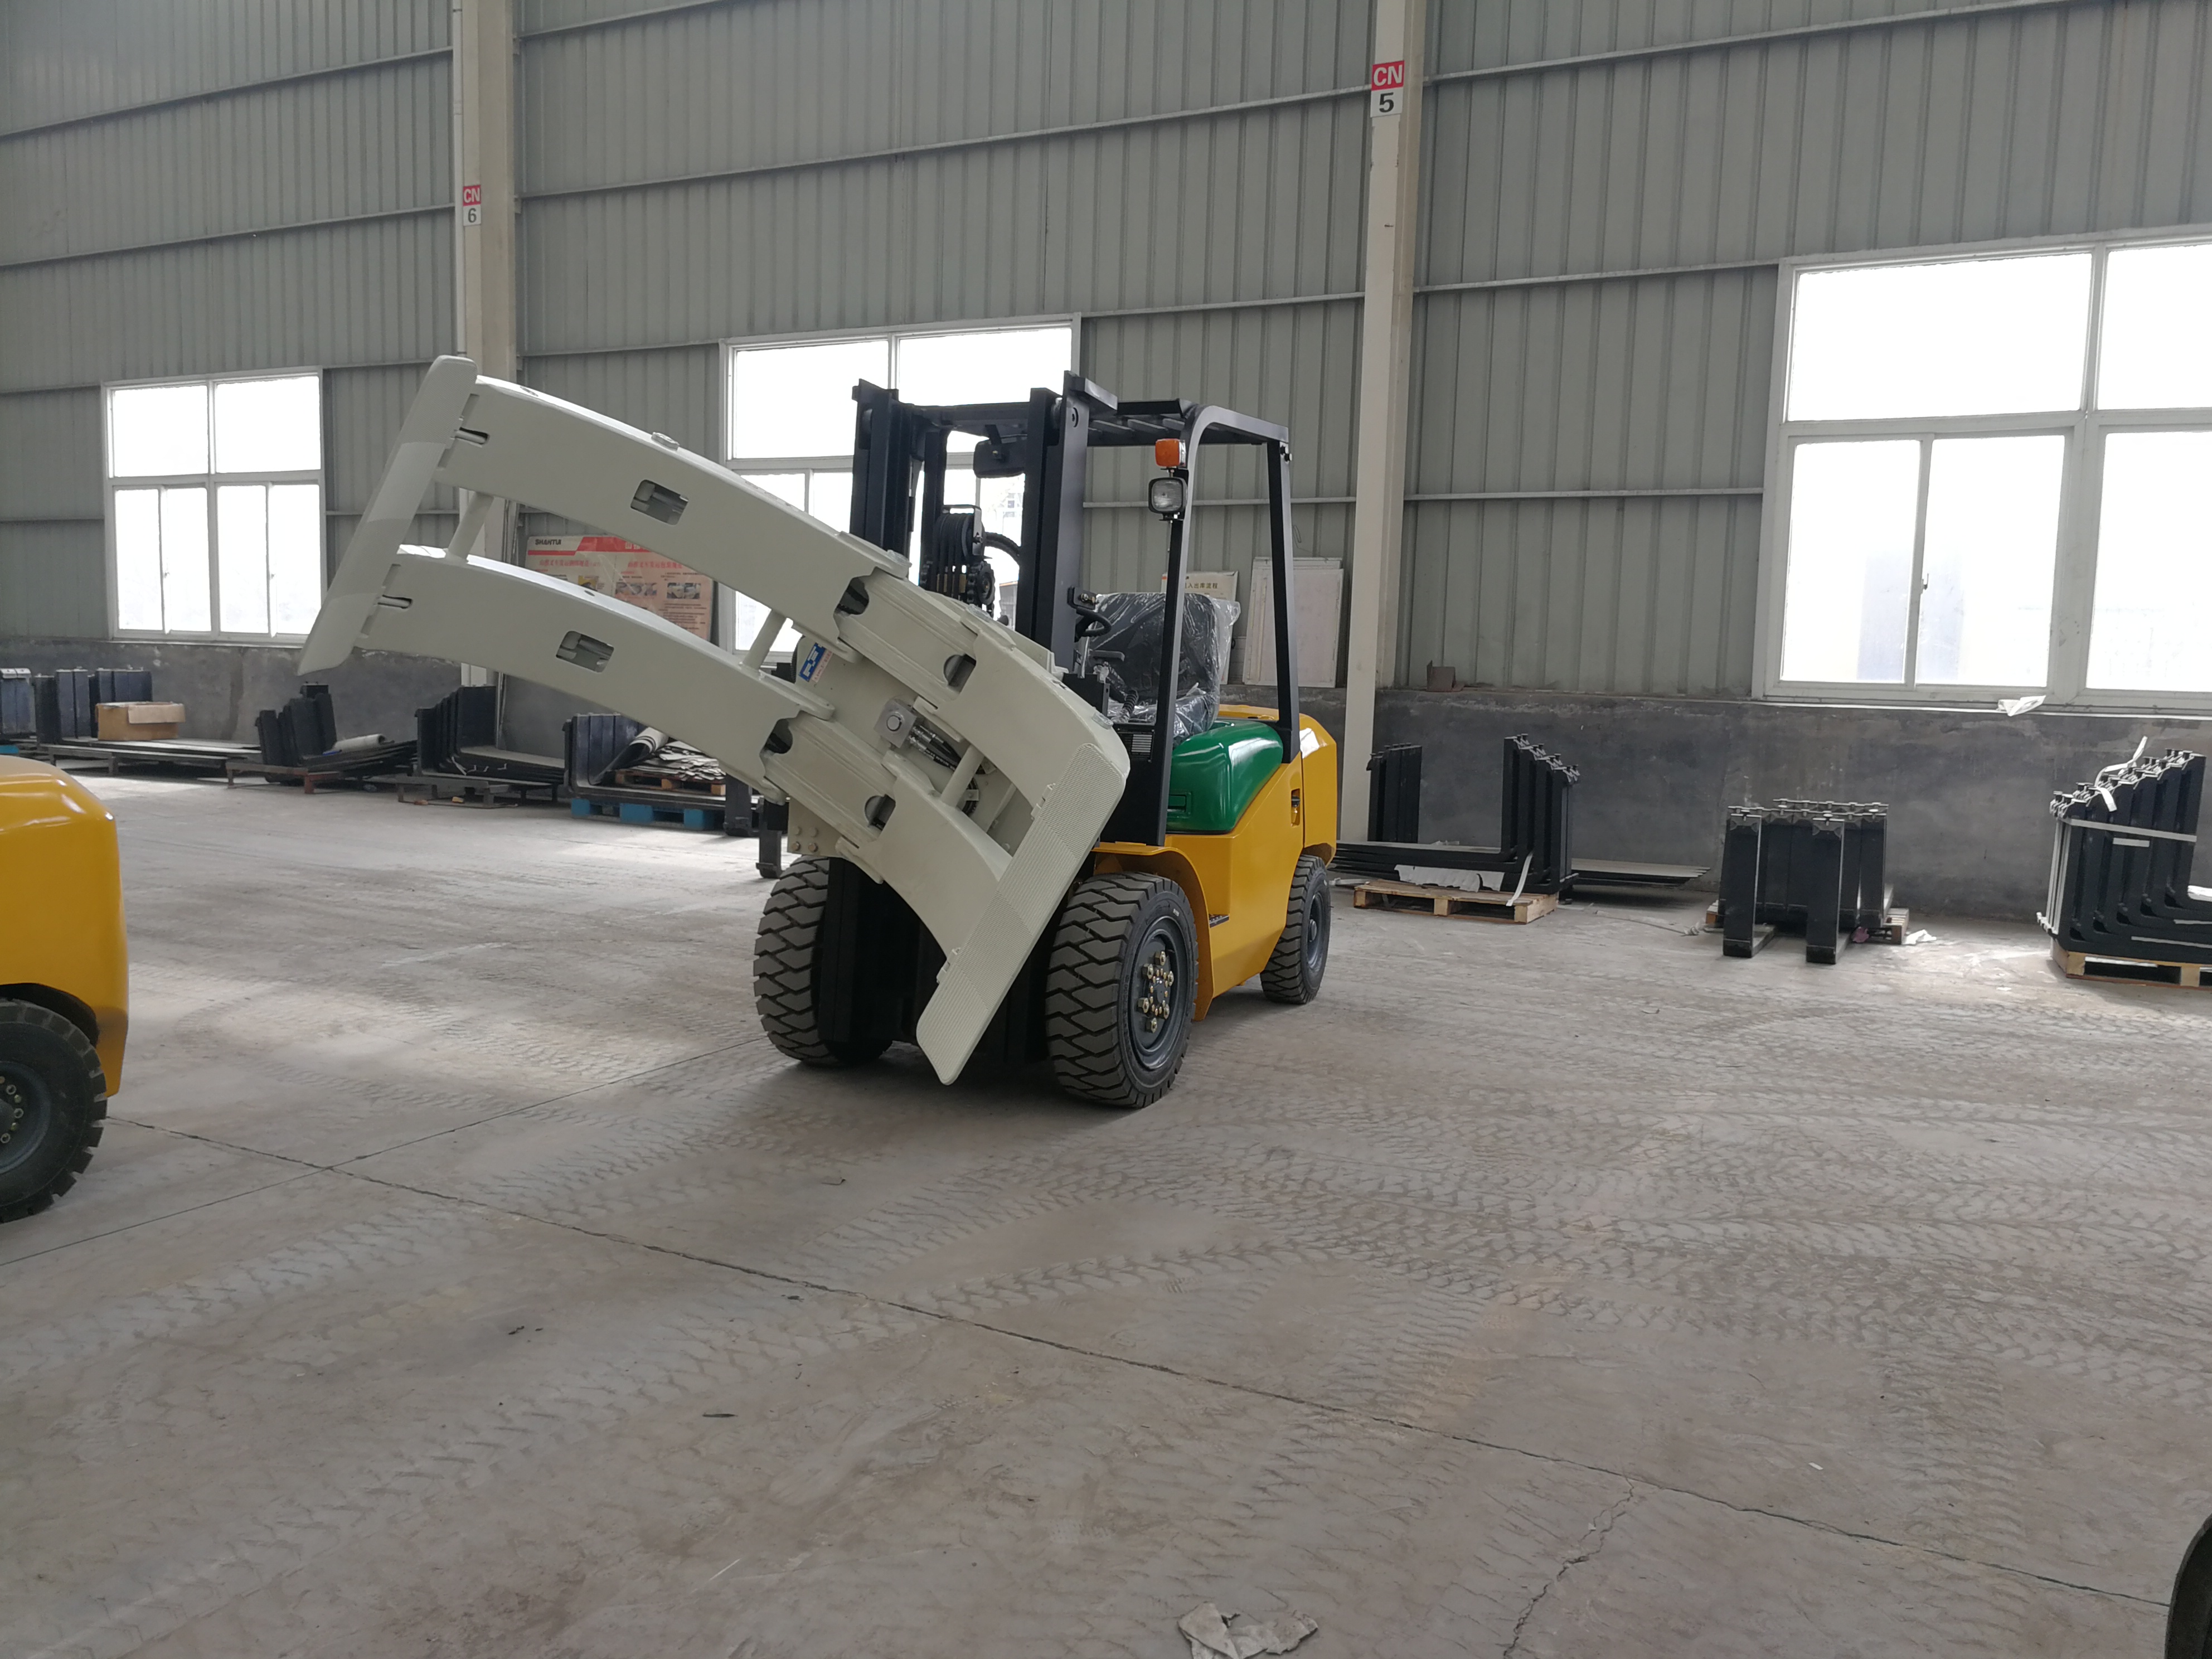 shantui forklift with paper roll clamps